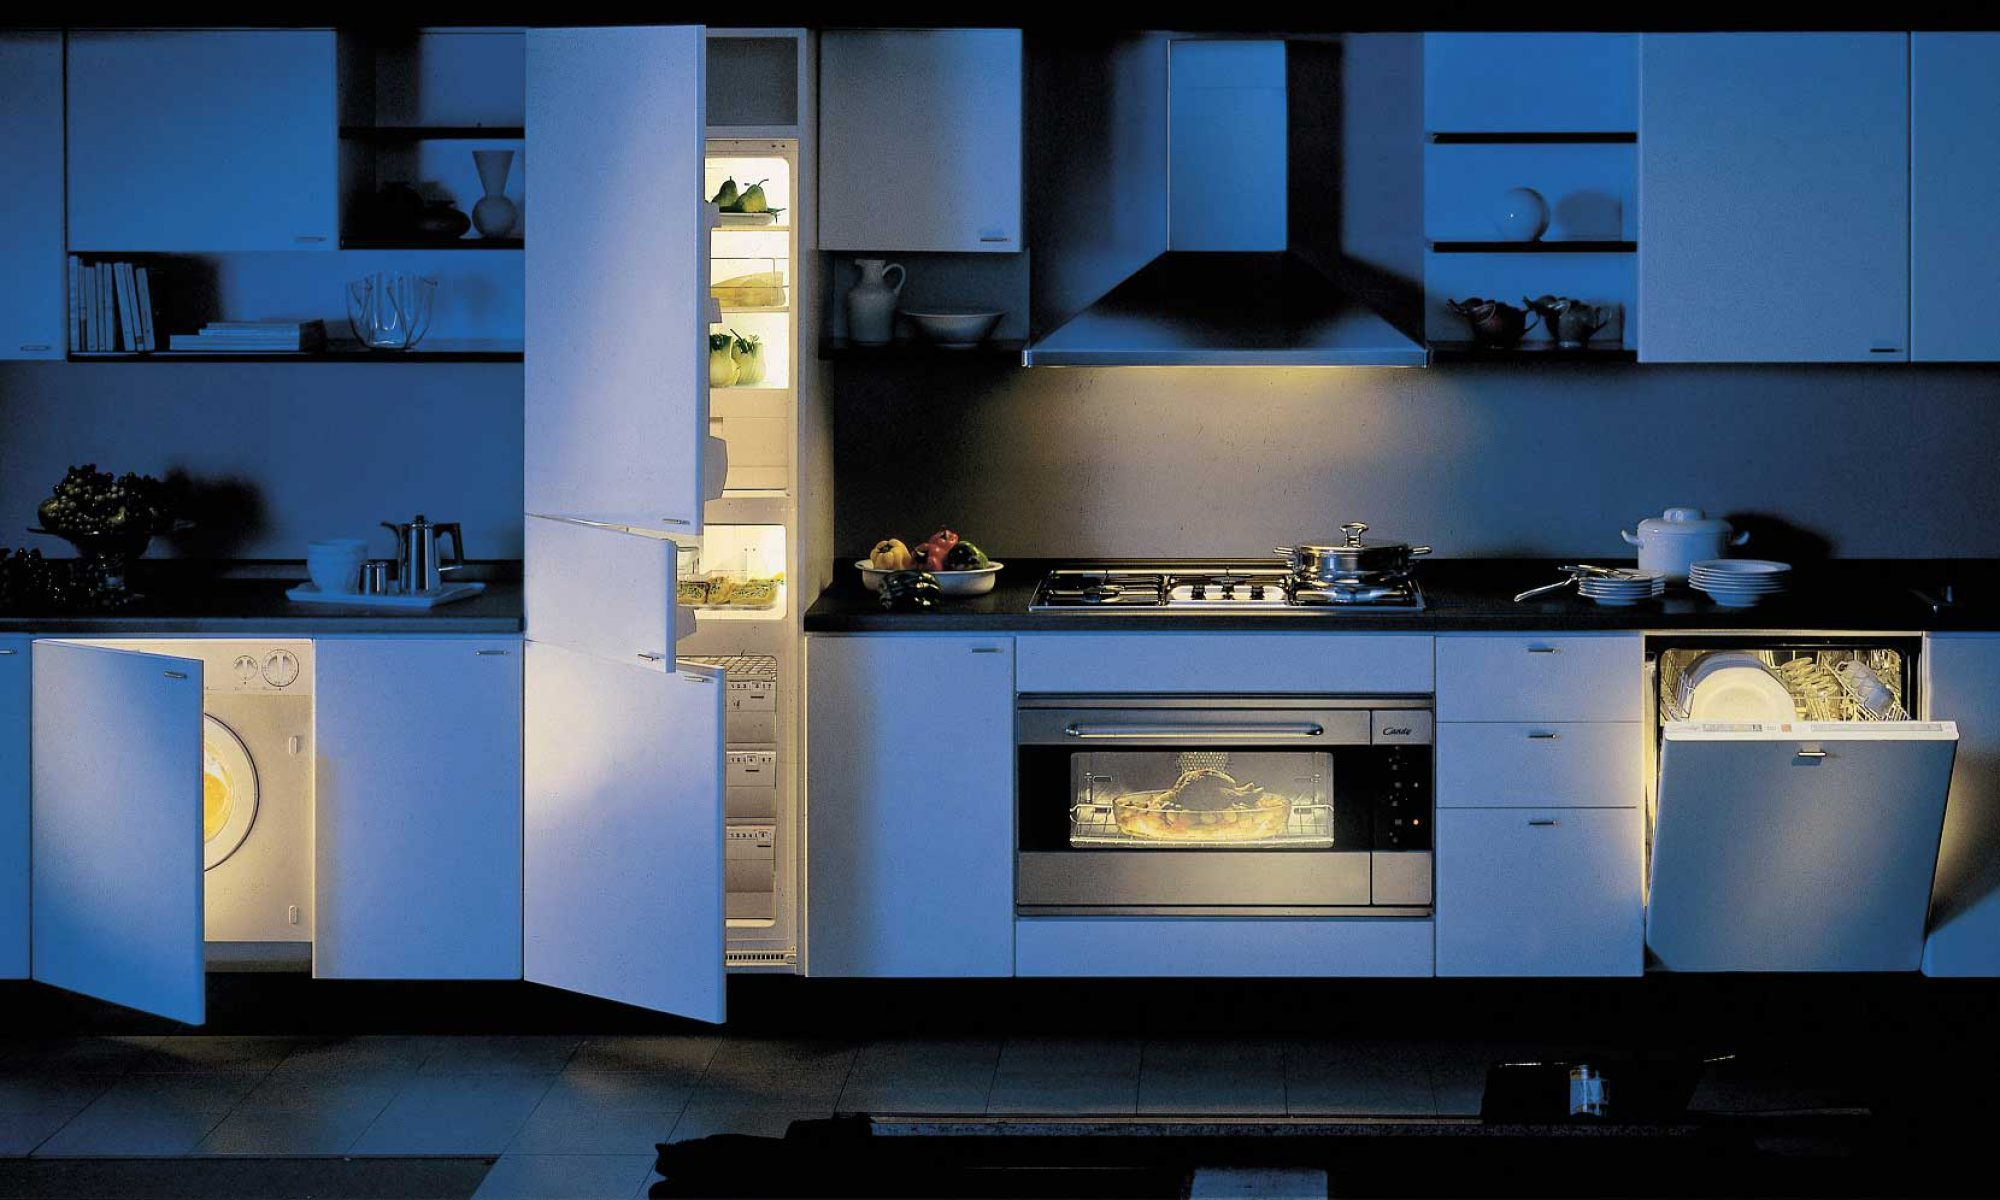 New spare parts kitchen appliances taste for Kitchen upgrades